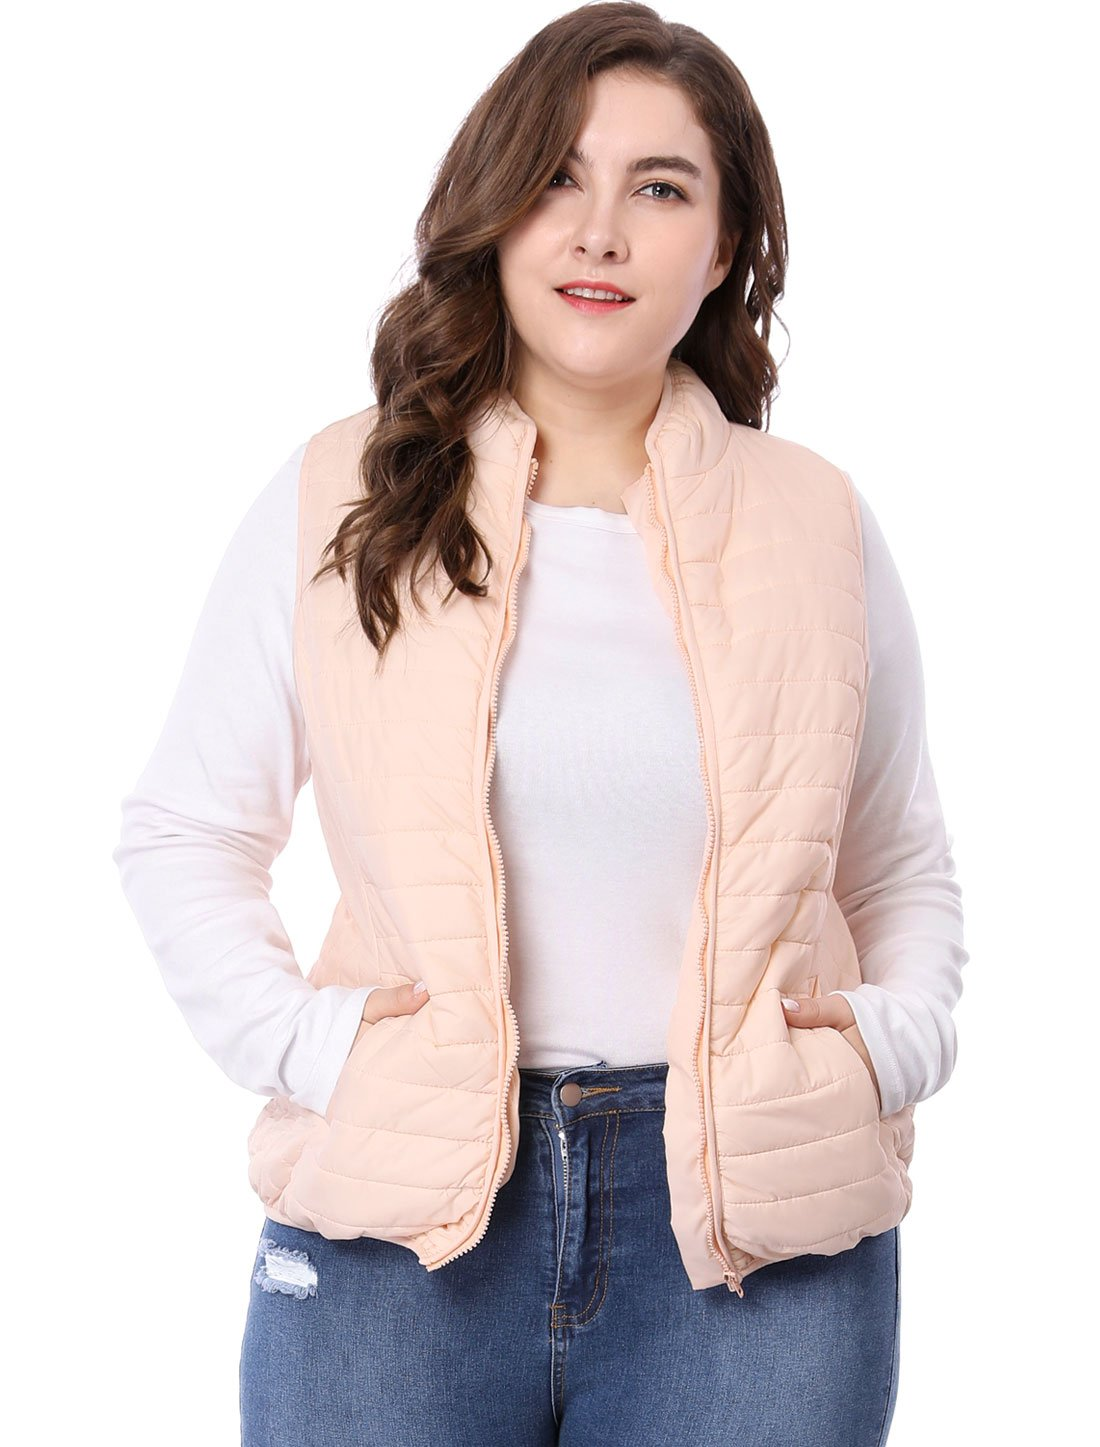 Agnes Orinda Women's Plus Size Stand Collar Zip Up Quilted Padded Vest 3X Pink